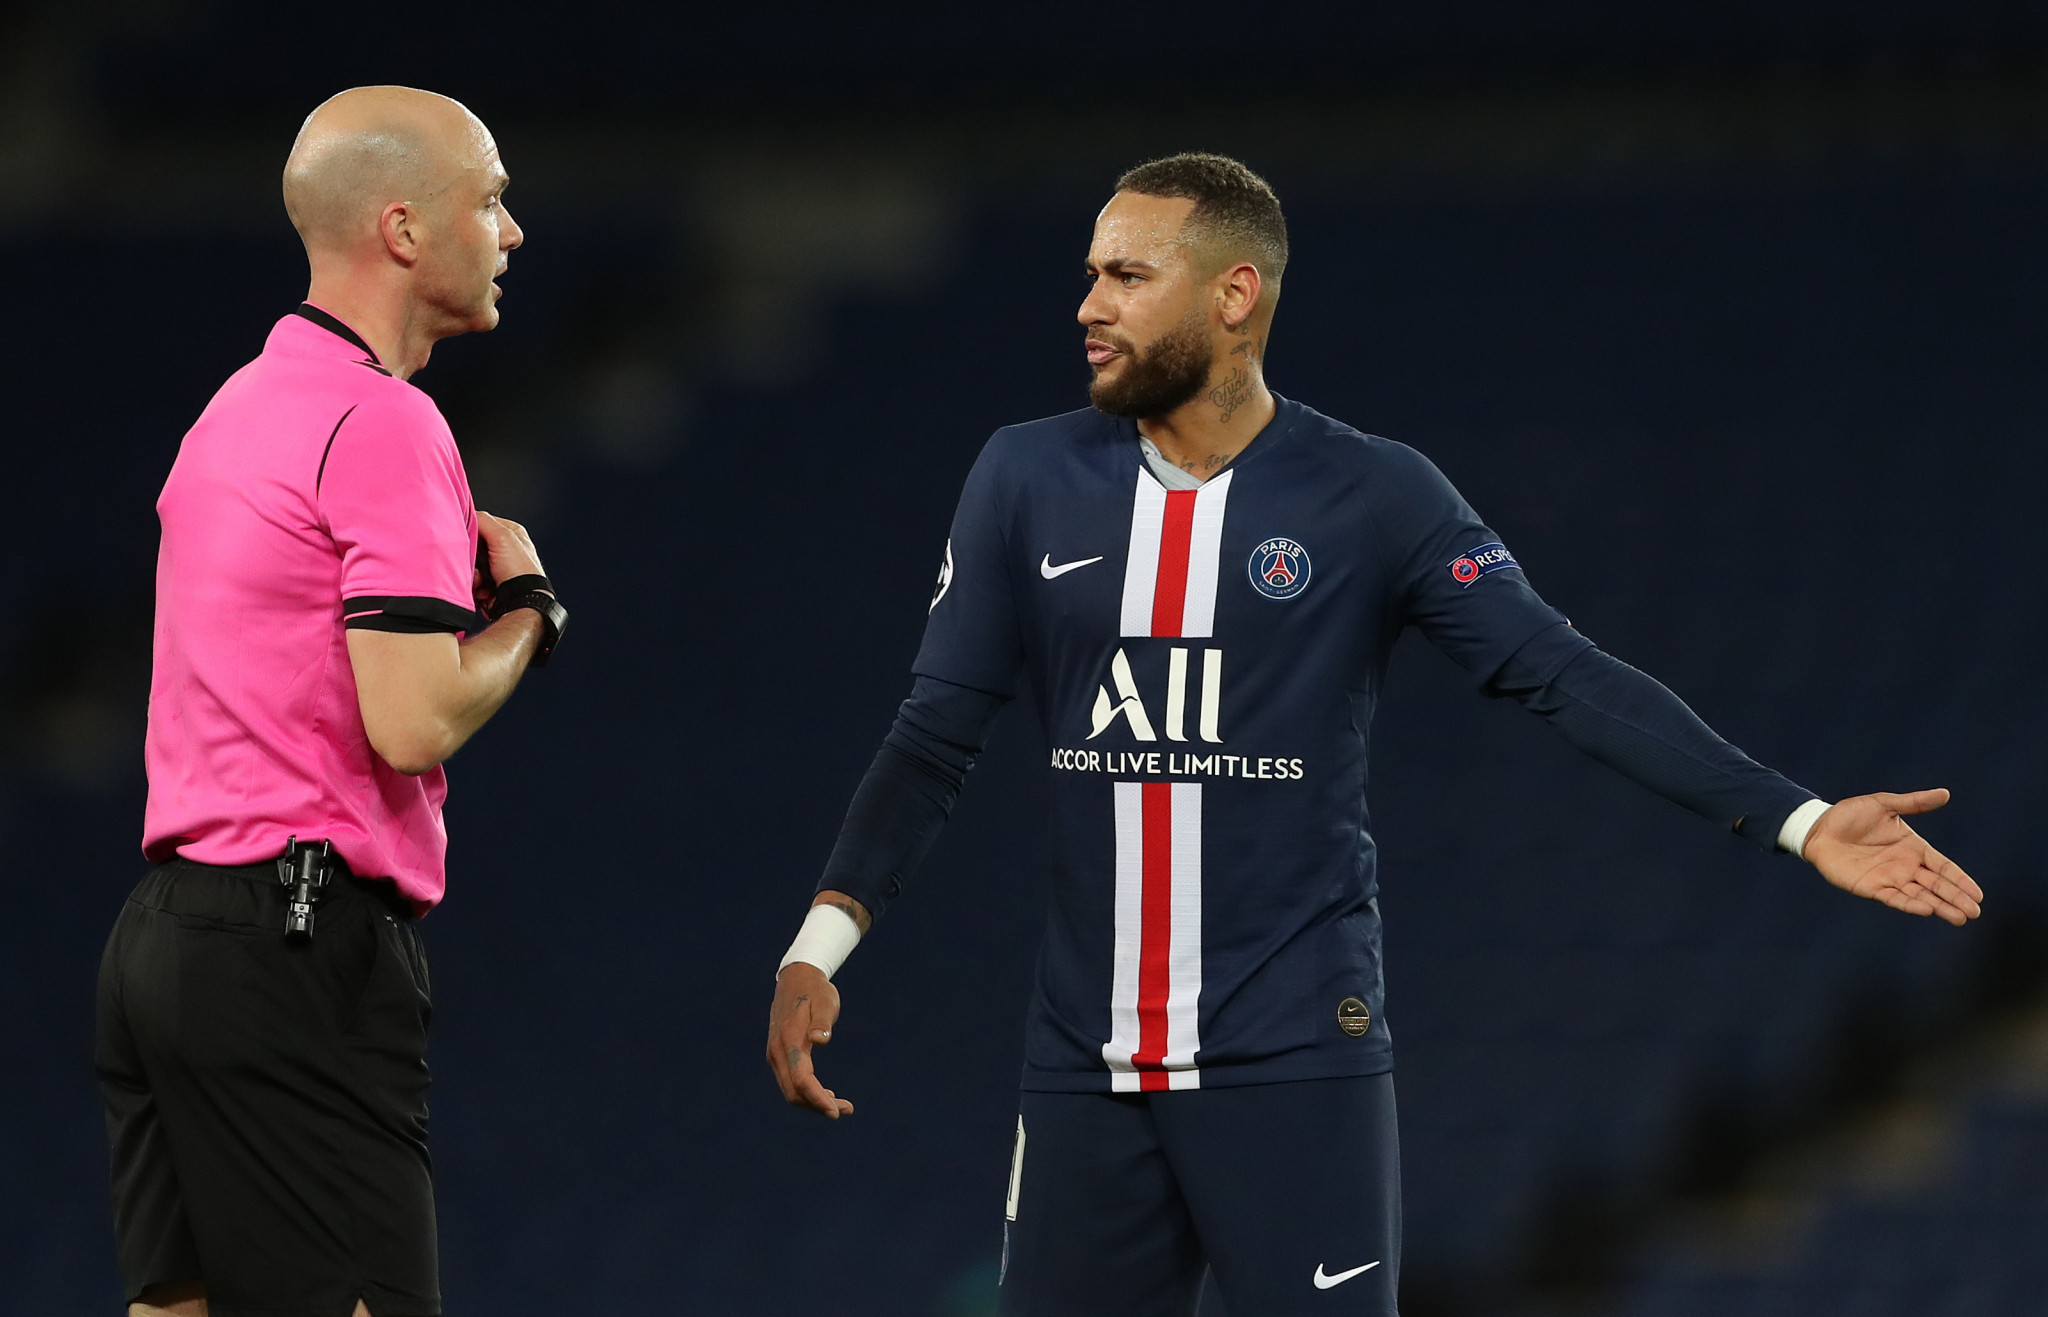 Paris Saint-Germain are one of two French clubs still in the UEFA Champions League, but they appear unable to play again this season ©Getty Images